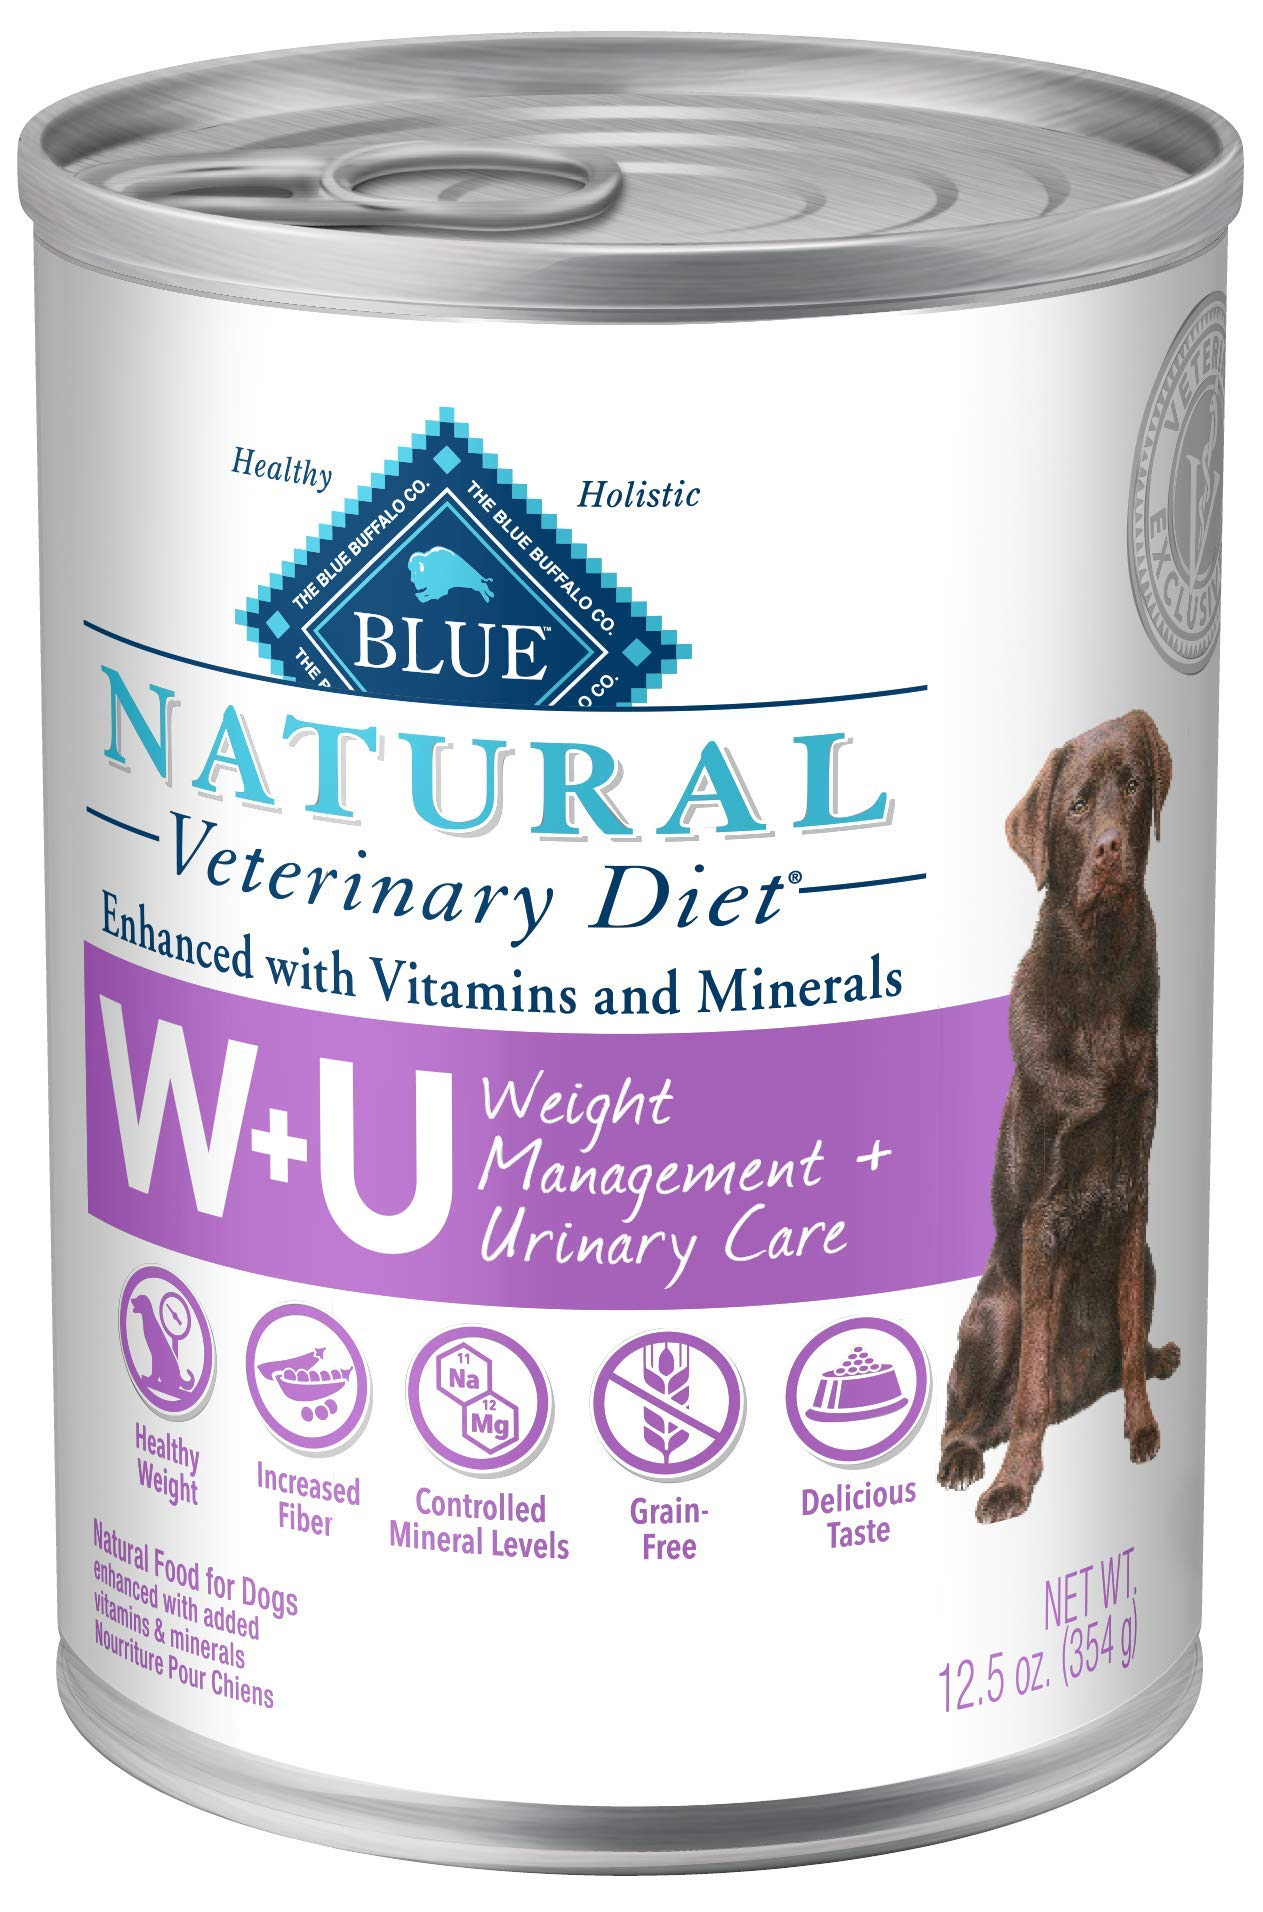 Blue Buffalo Natural Veterinary Diet Weight Management + Urinary Care for Dogs 12.5oz by Blue Buffalo Natural Veterinary Diet